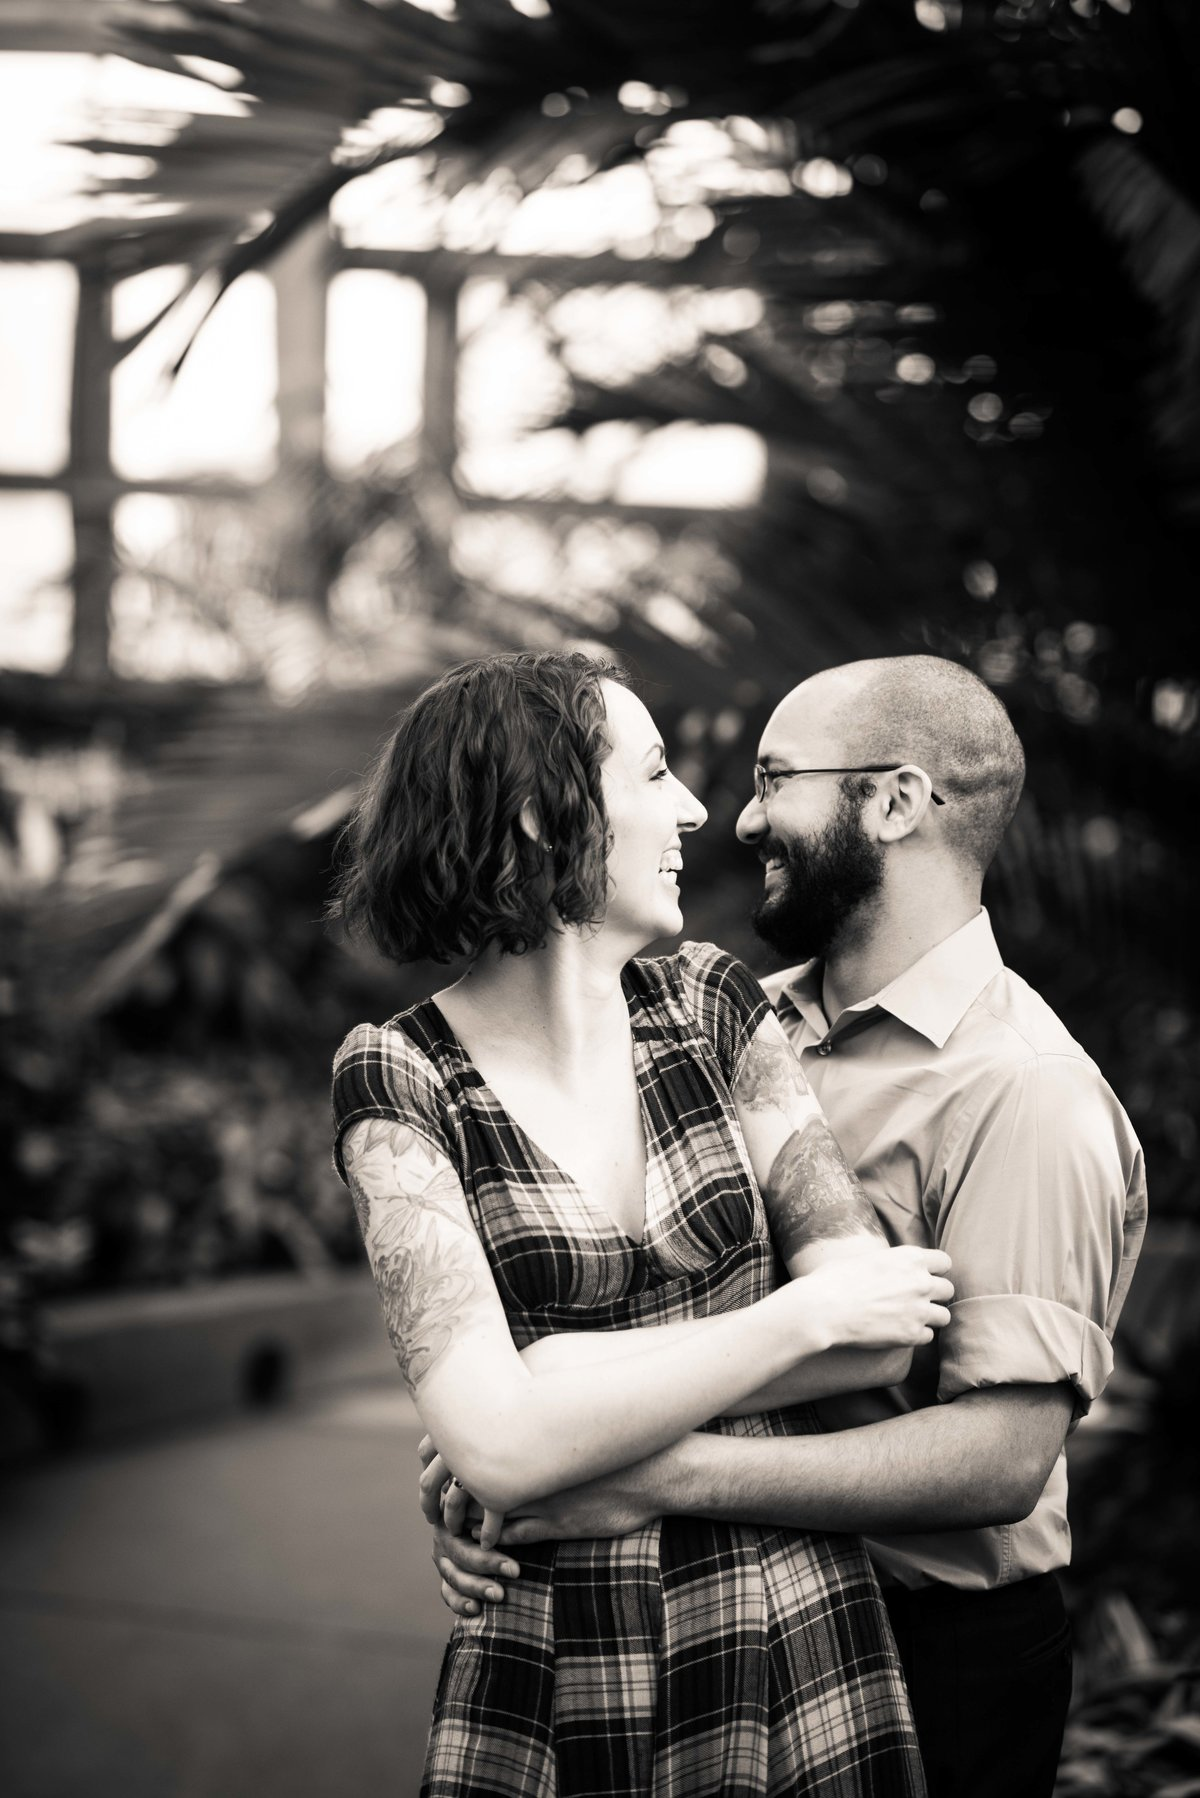 Engaged couple smiles and laughs, Garfield Park Conservatory, Chicago.